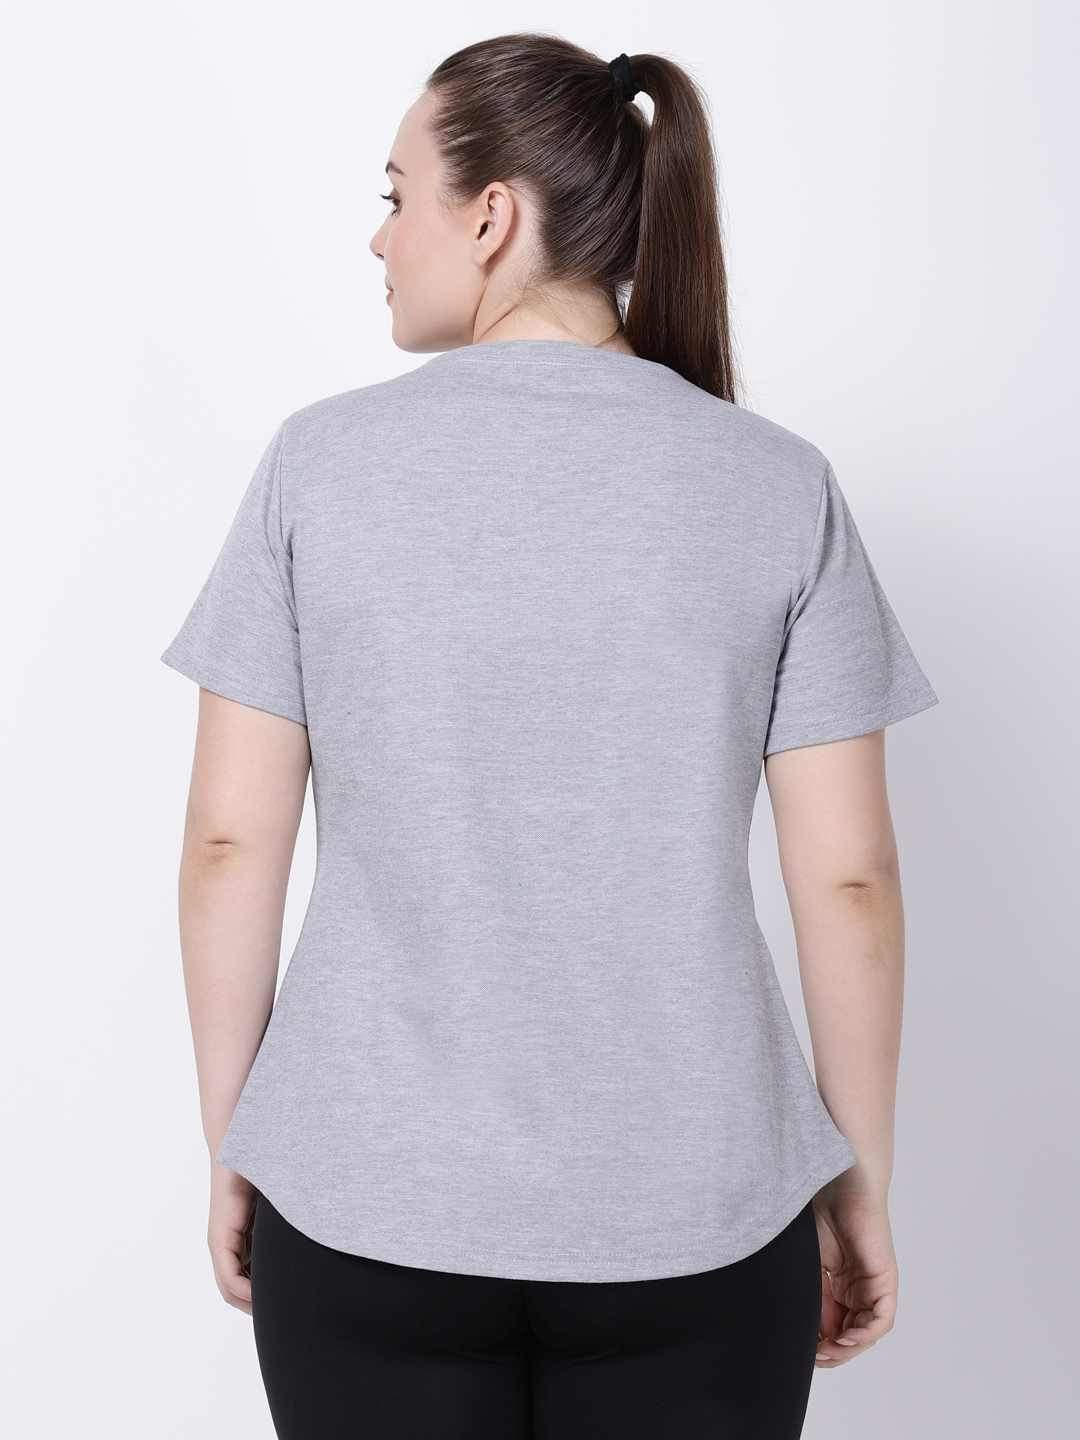 Grey-Violet Style Diva Tunic